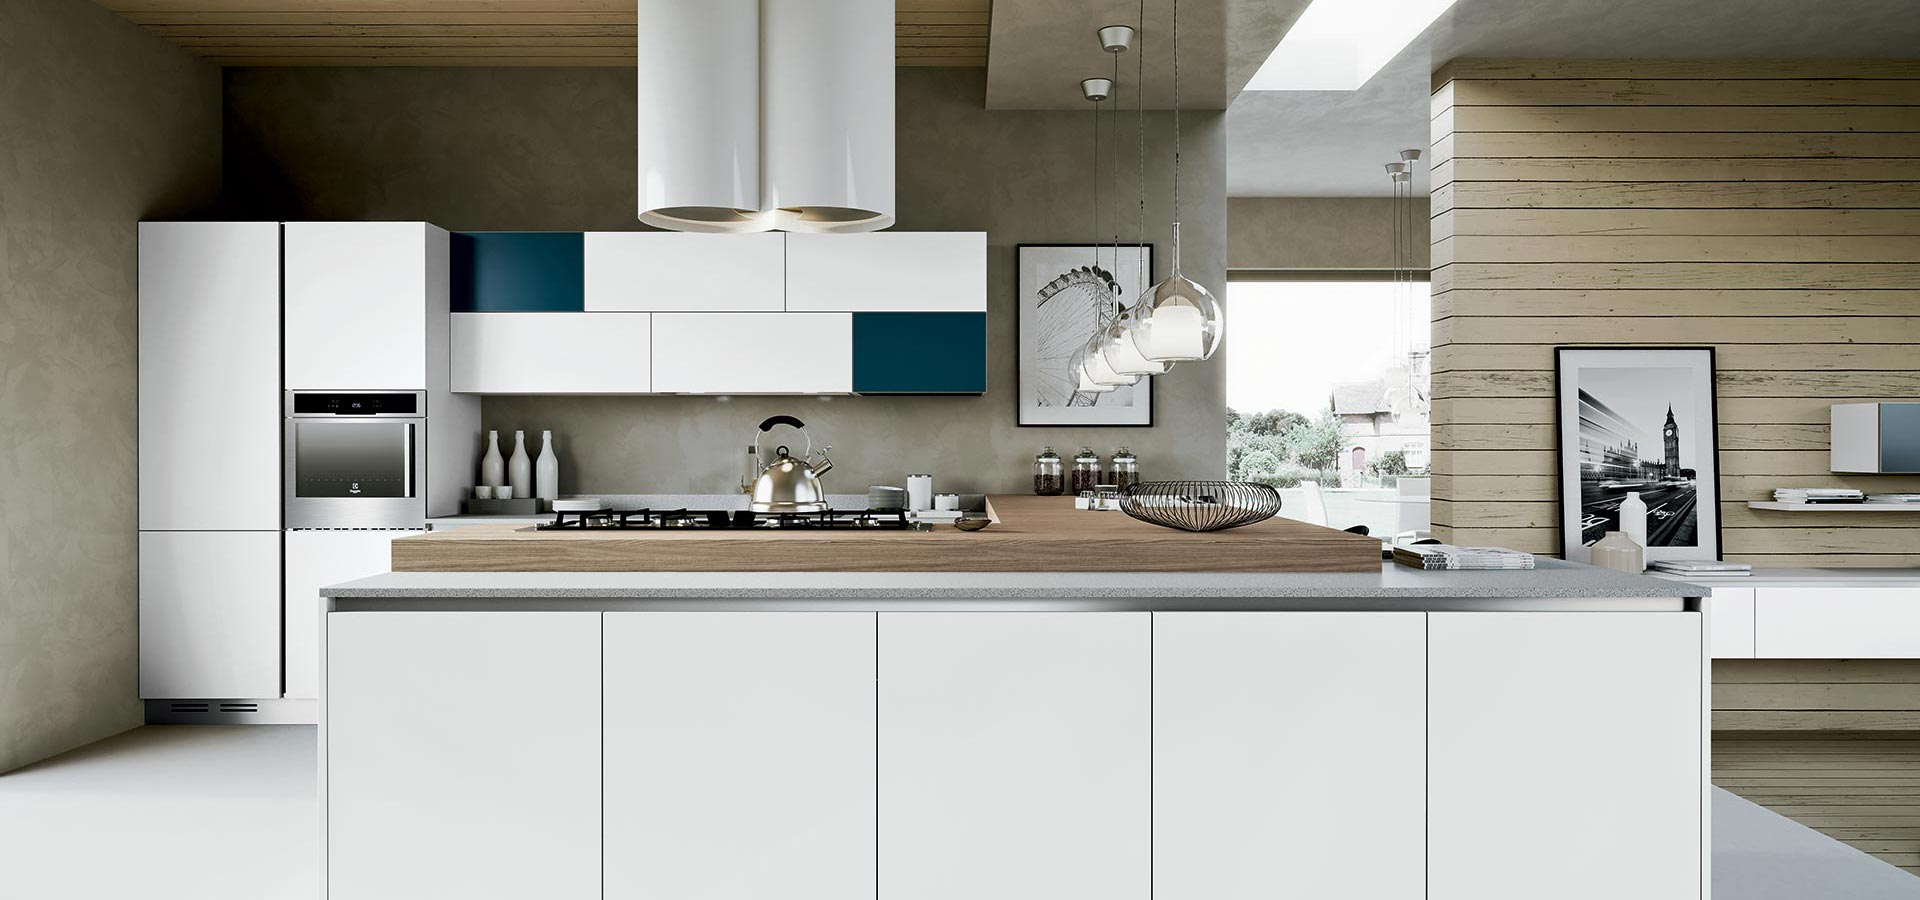 The eye-catching placement of two contrasting wall units creates real impact in this largely white kitchen.